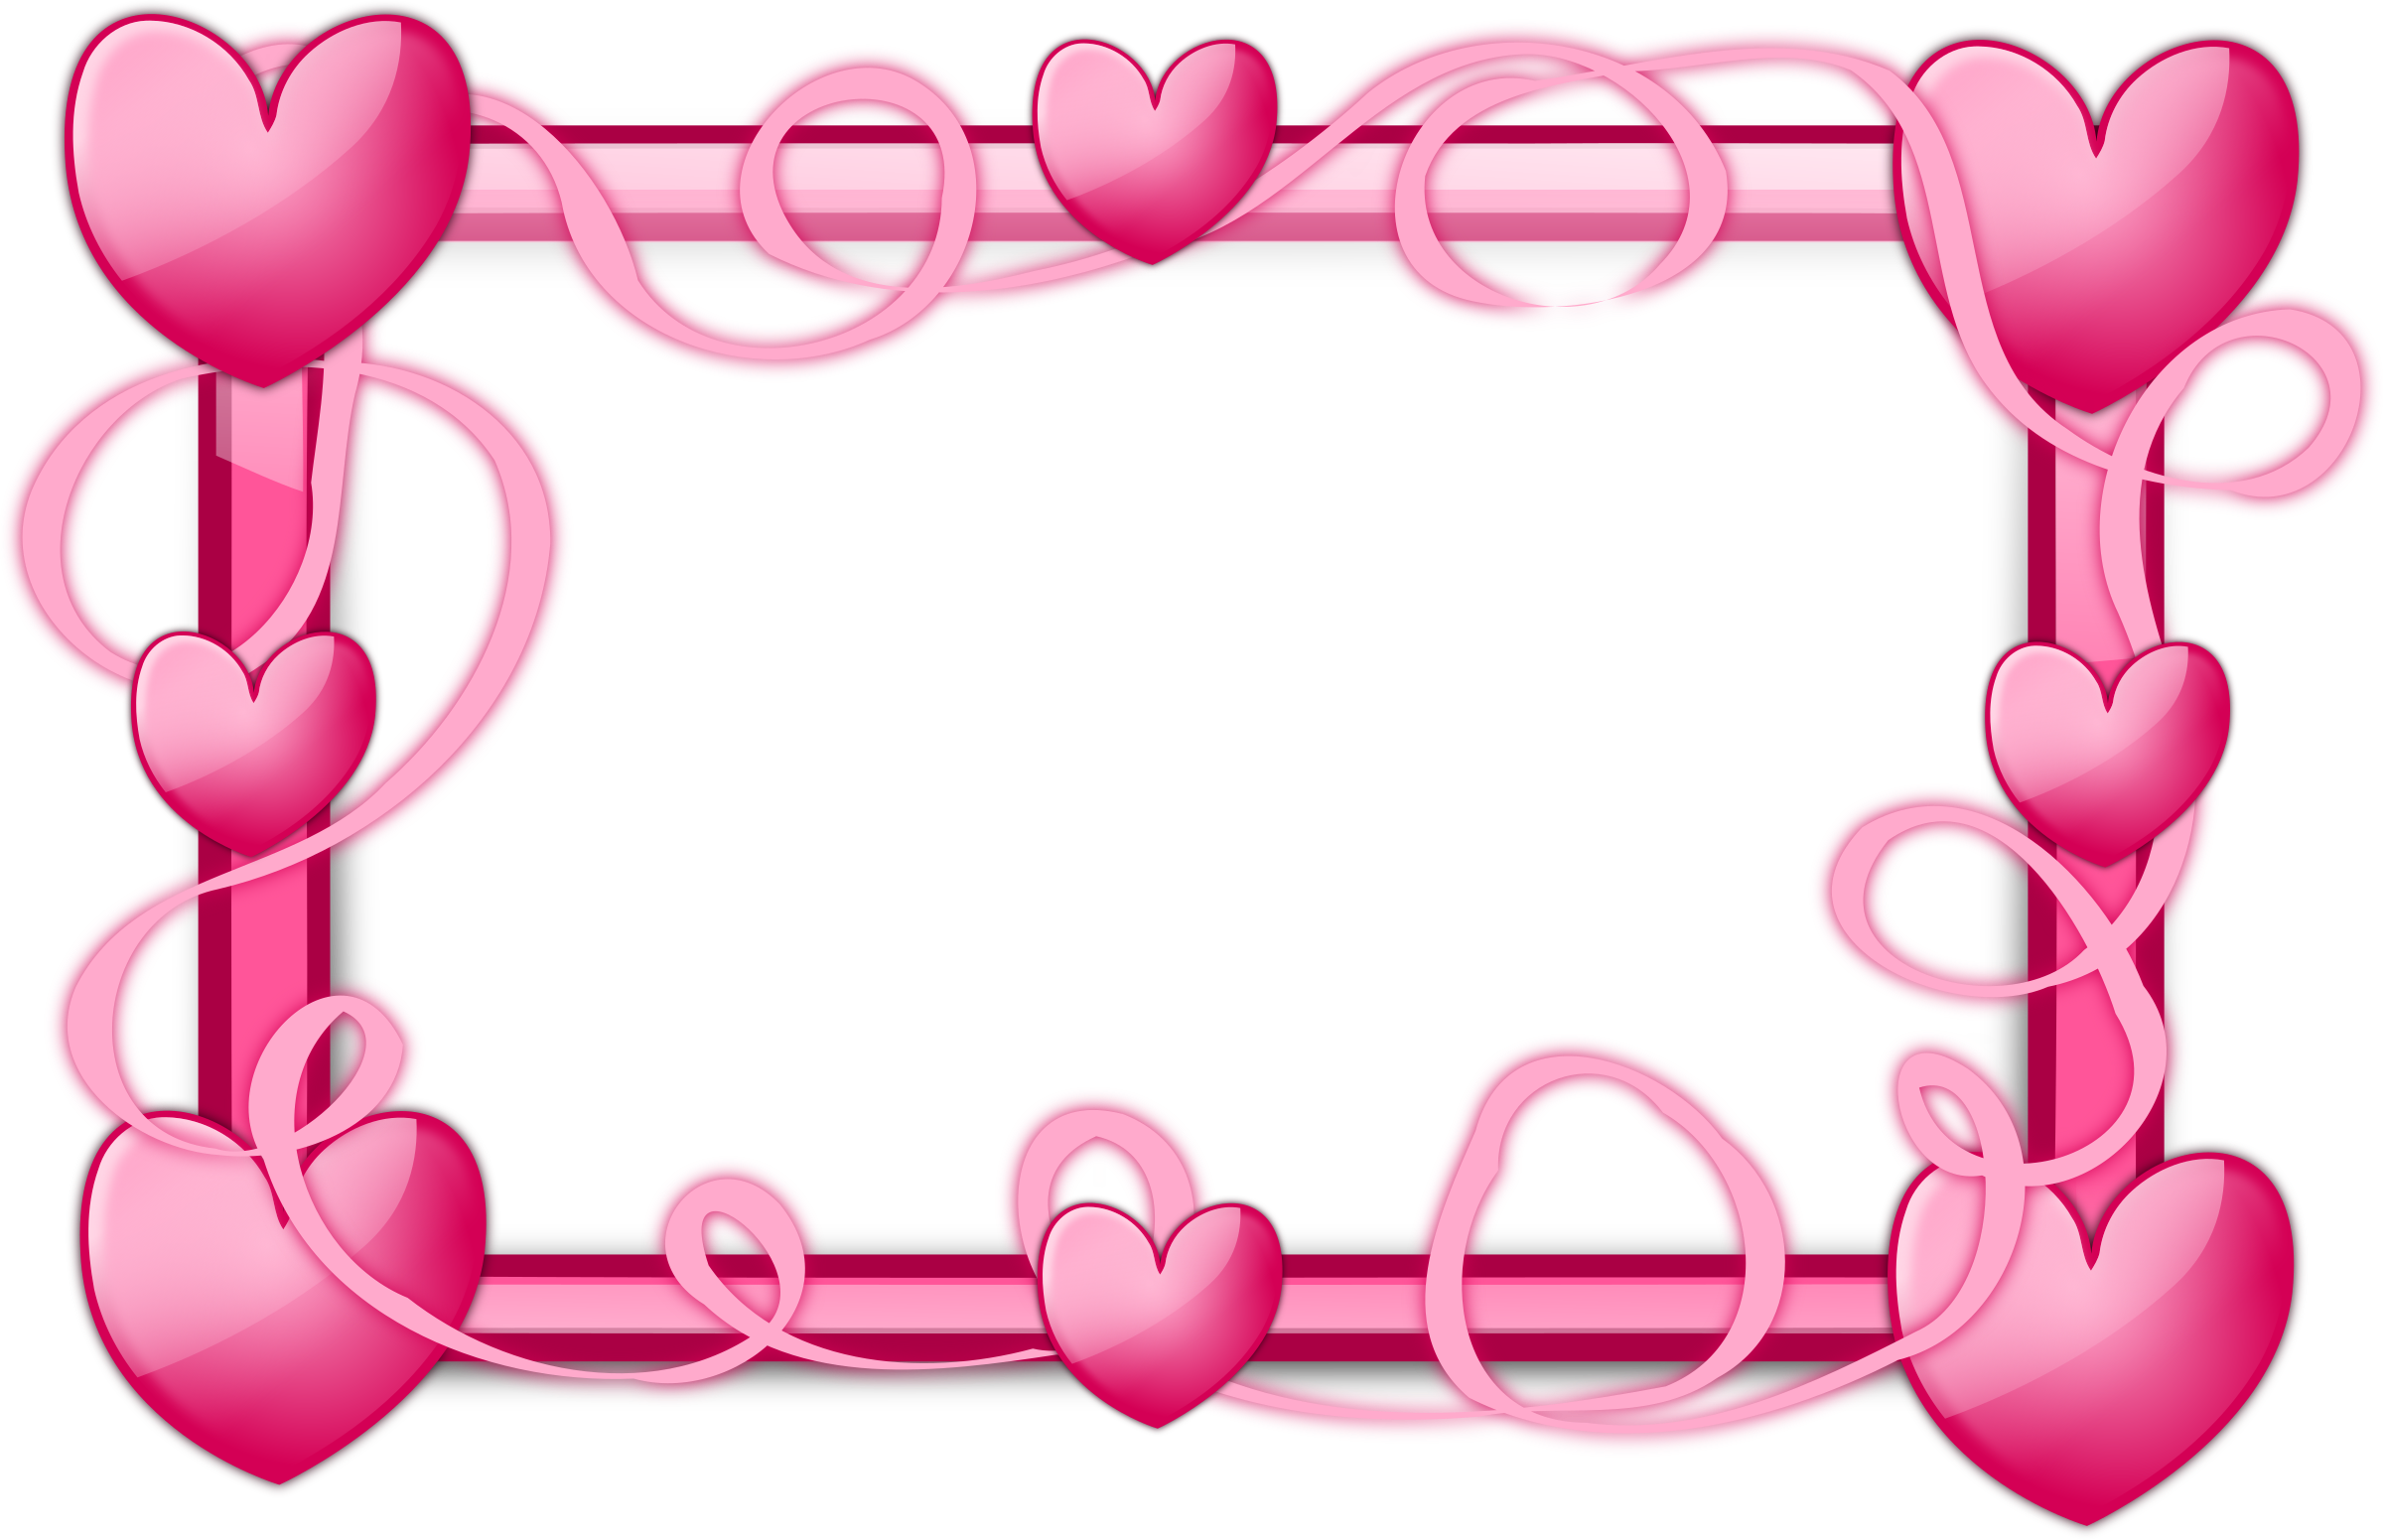 Hearts frame big image. Wednesday clipart pink